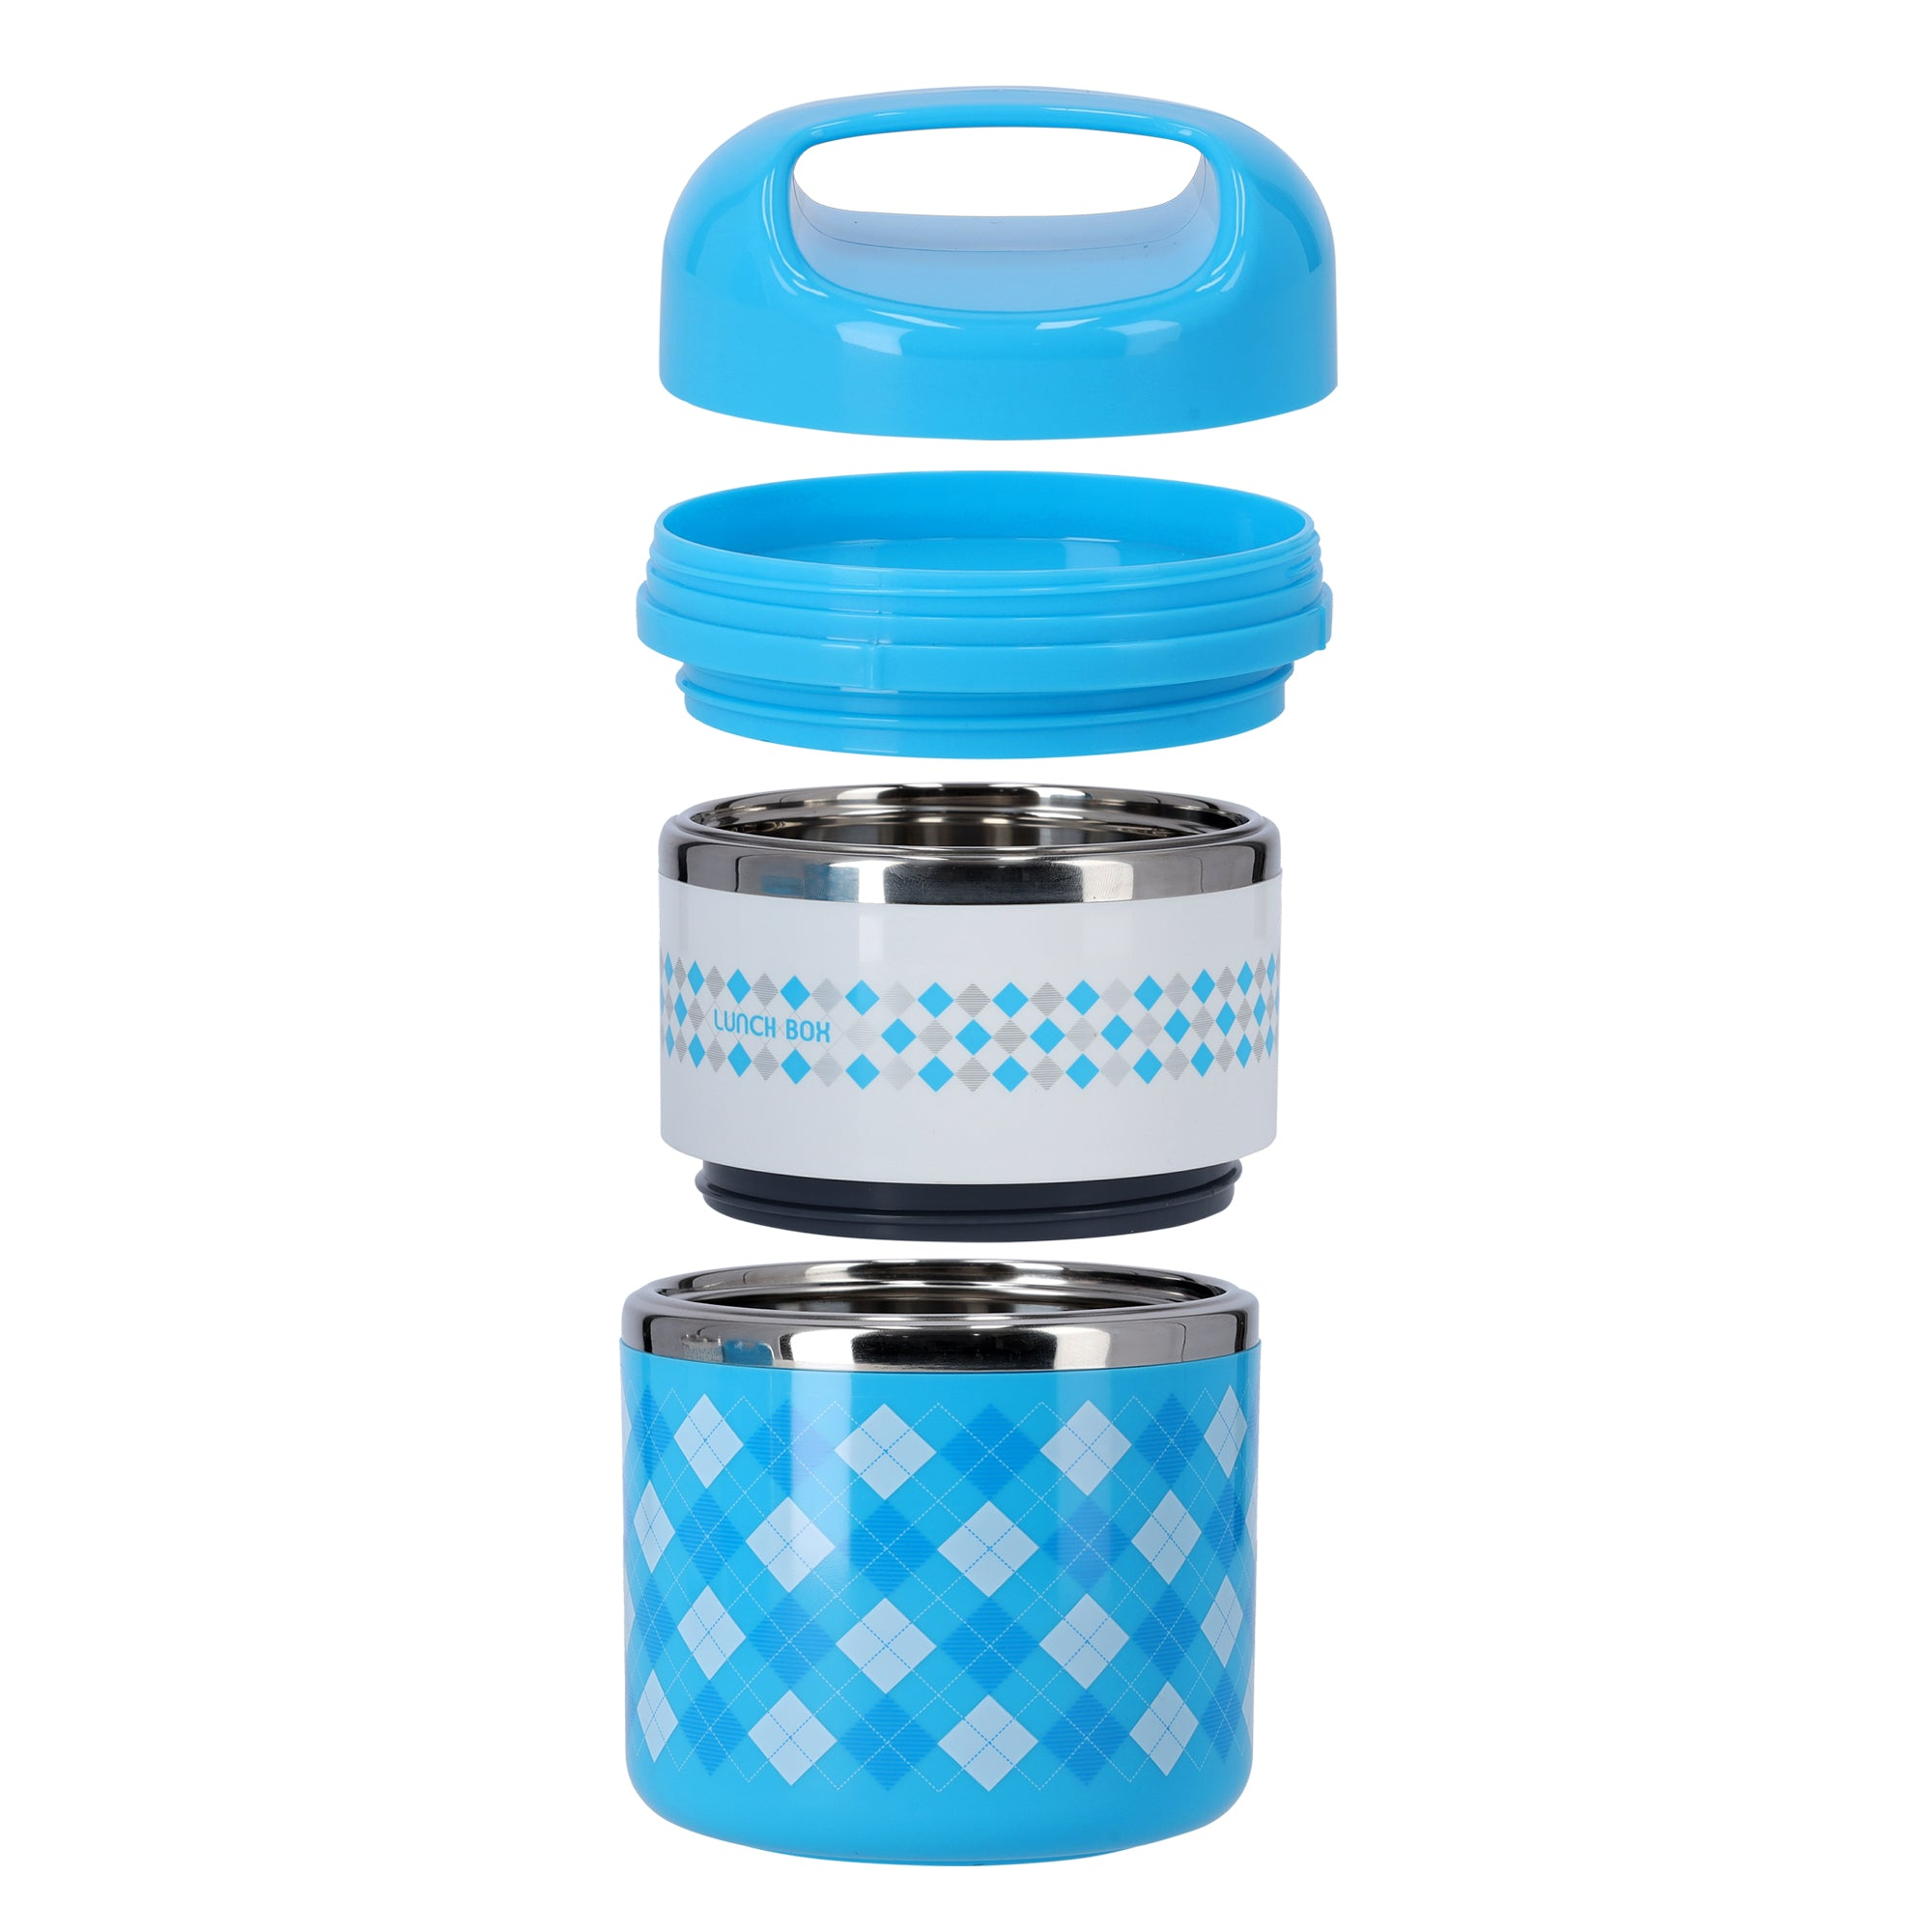 S/S Two Layer Food Container/930Ml 1X24